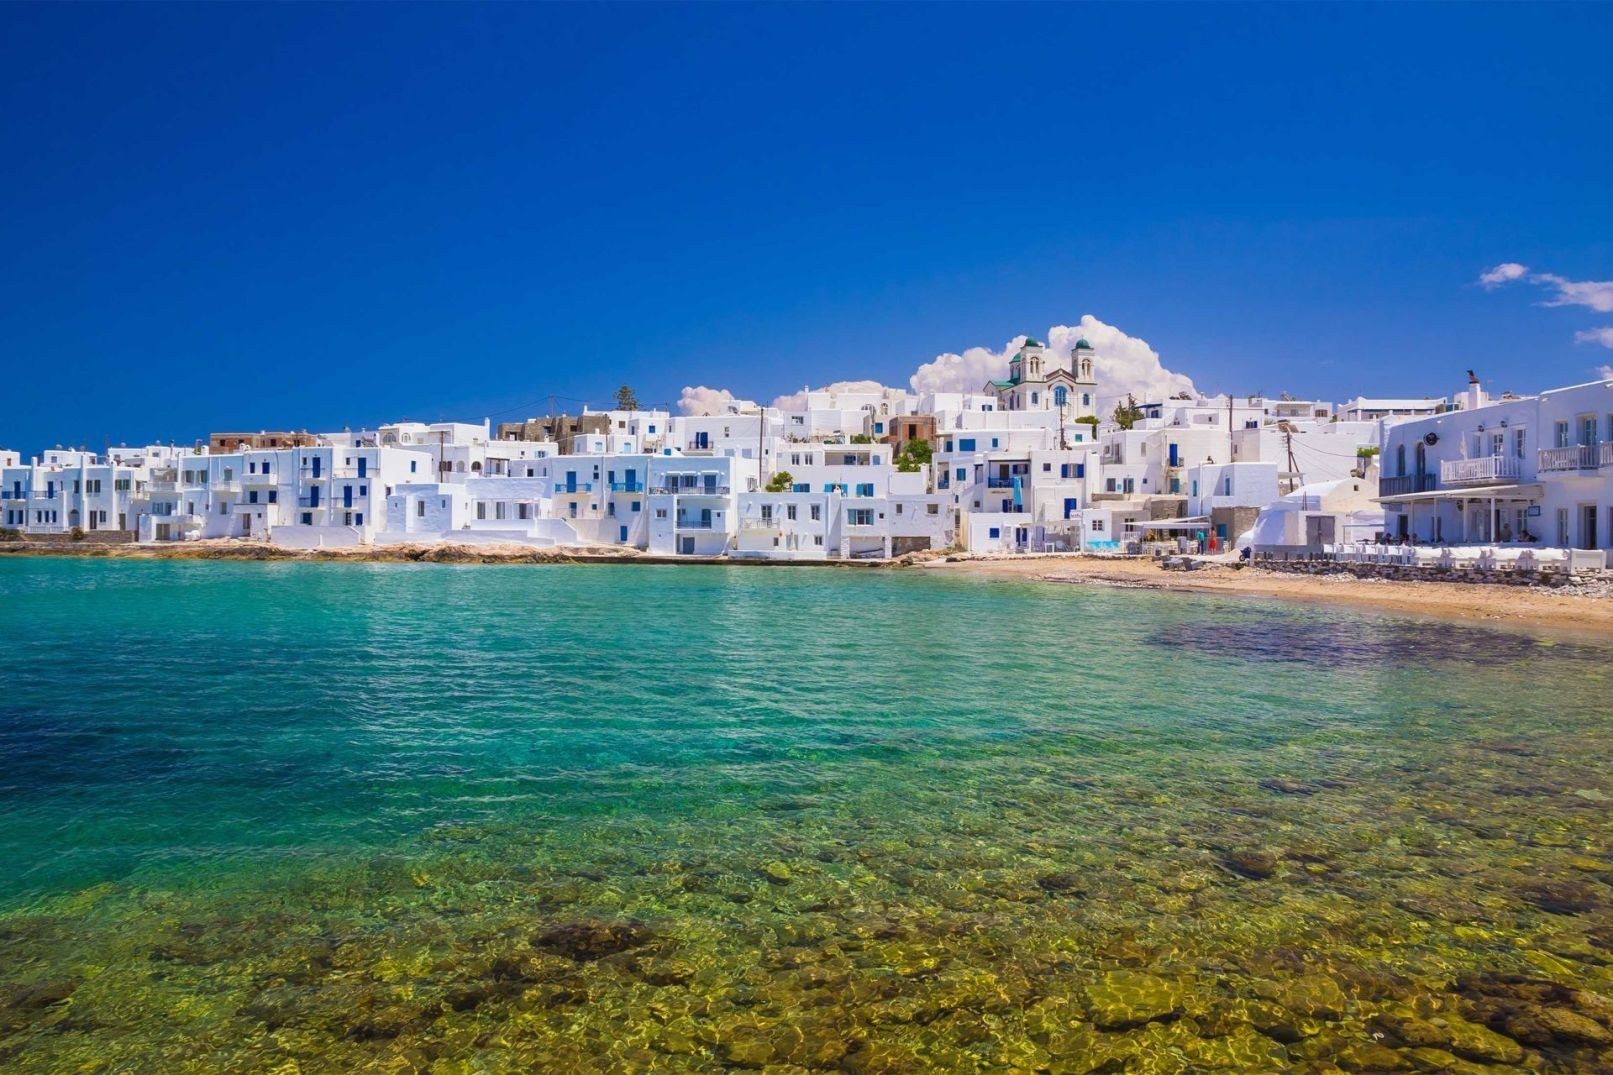 Antiparos - Paros 2 days private cruise